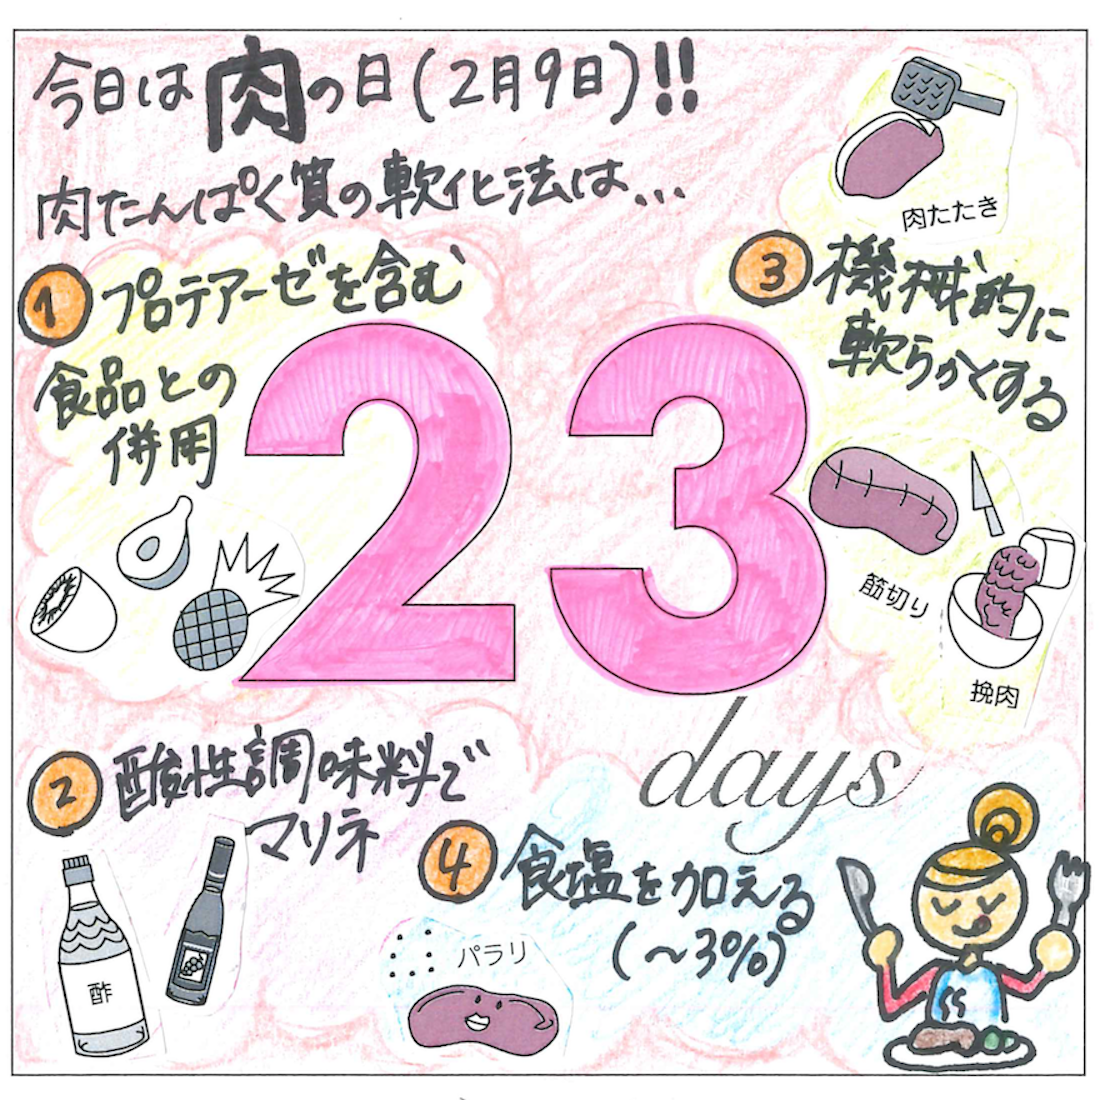 23days.png